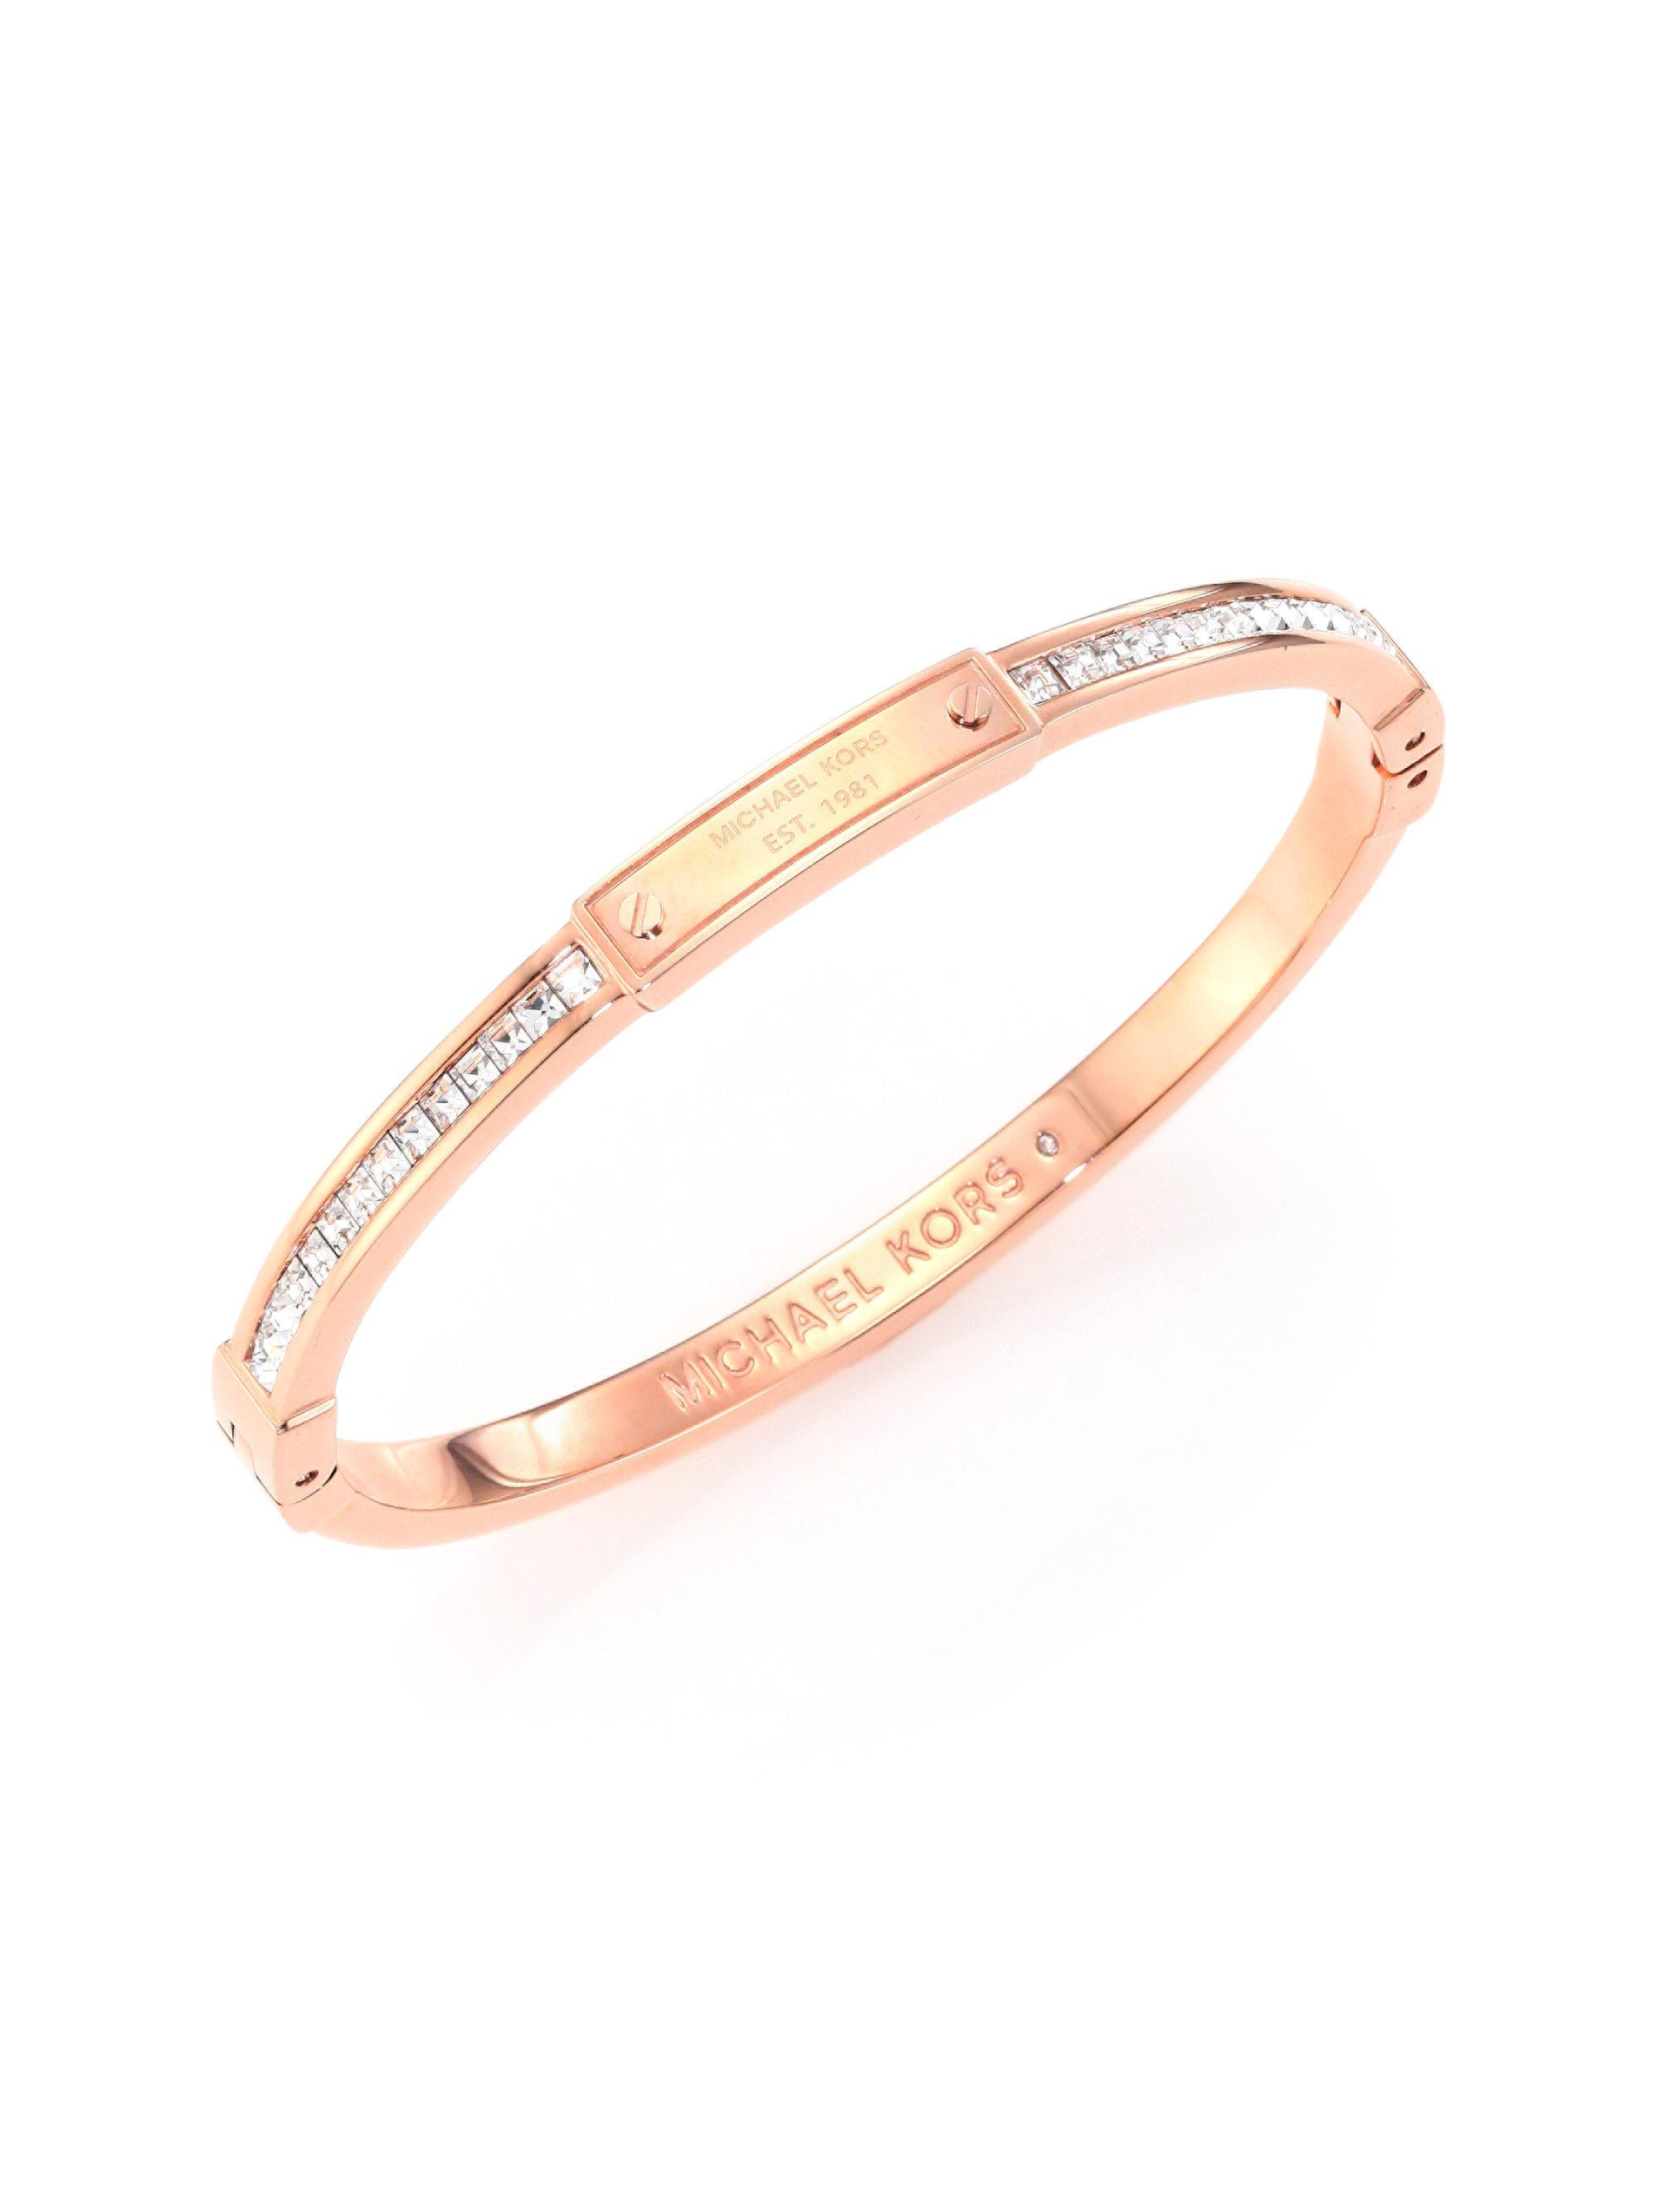 edinburgh bangle rosie jewel products bangles pave row tree rose gold